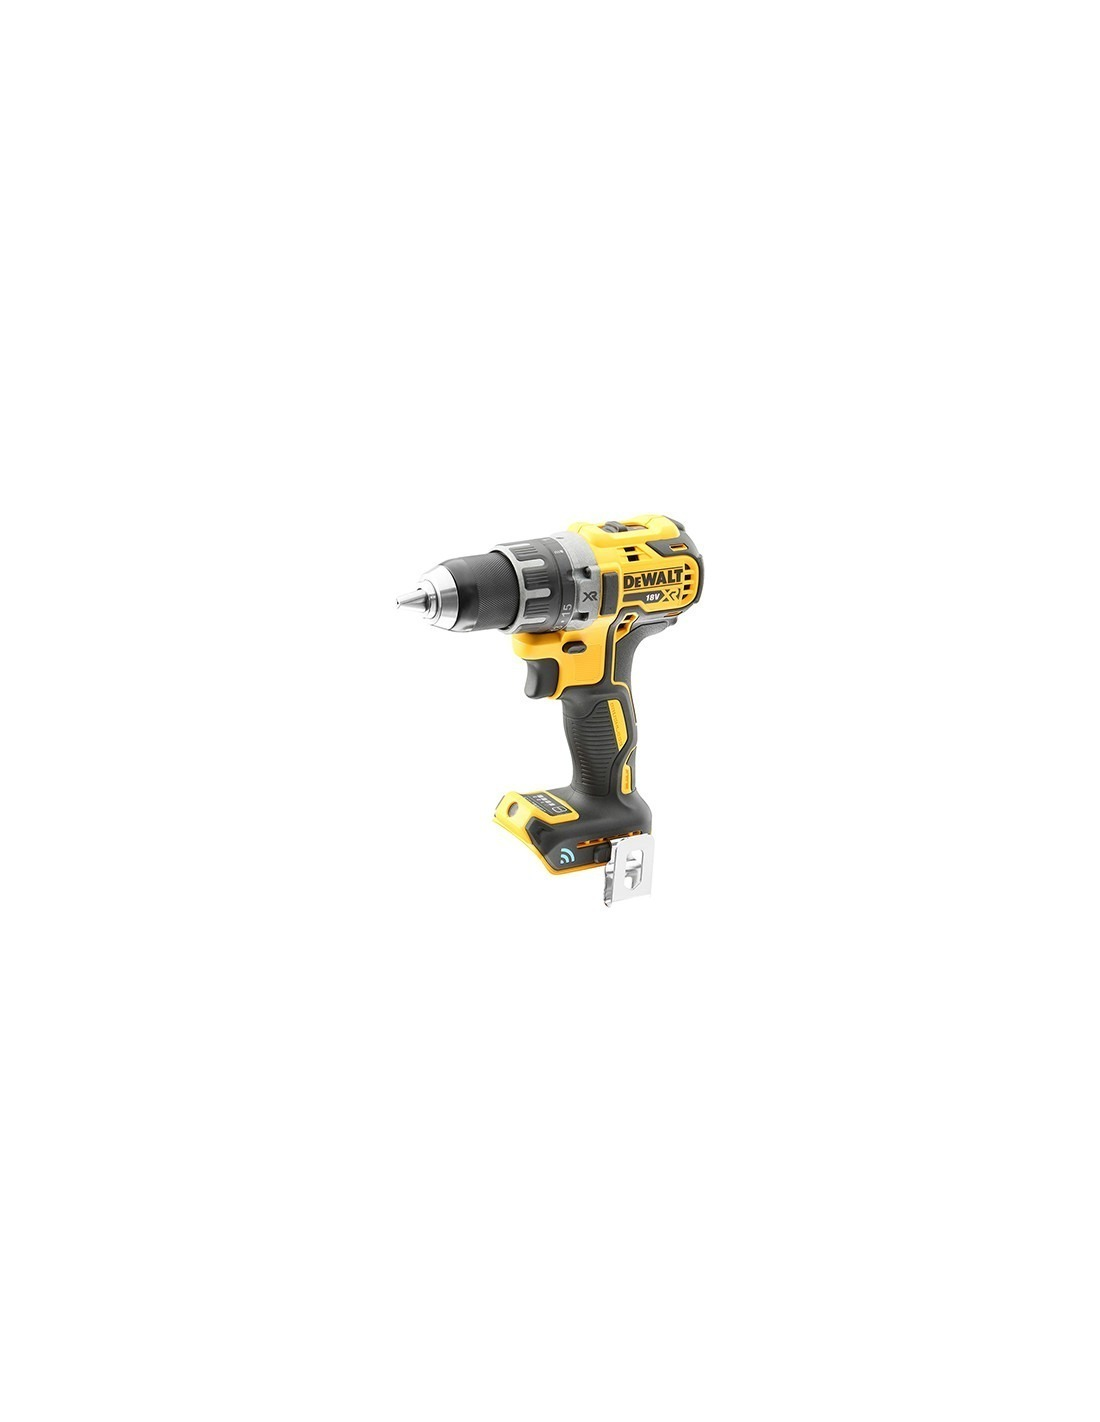 sans Batterie Ni Chargeur Coffret Tstak Perceuse Visseuse Percussion XR 18V Brushless Tool Connect